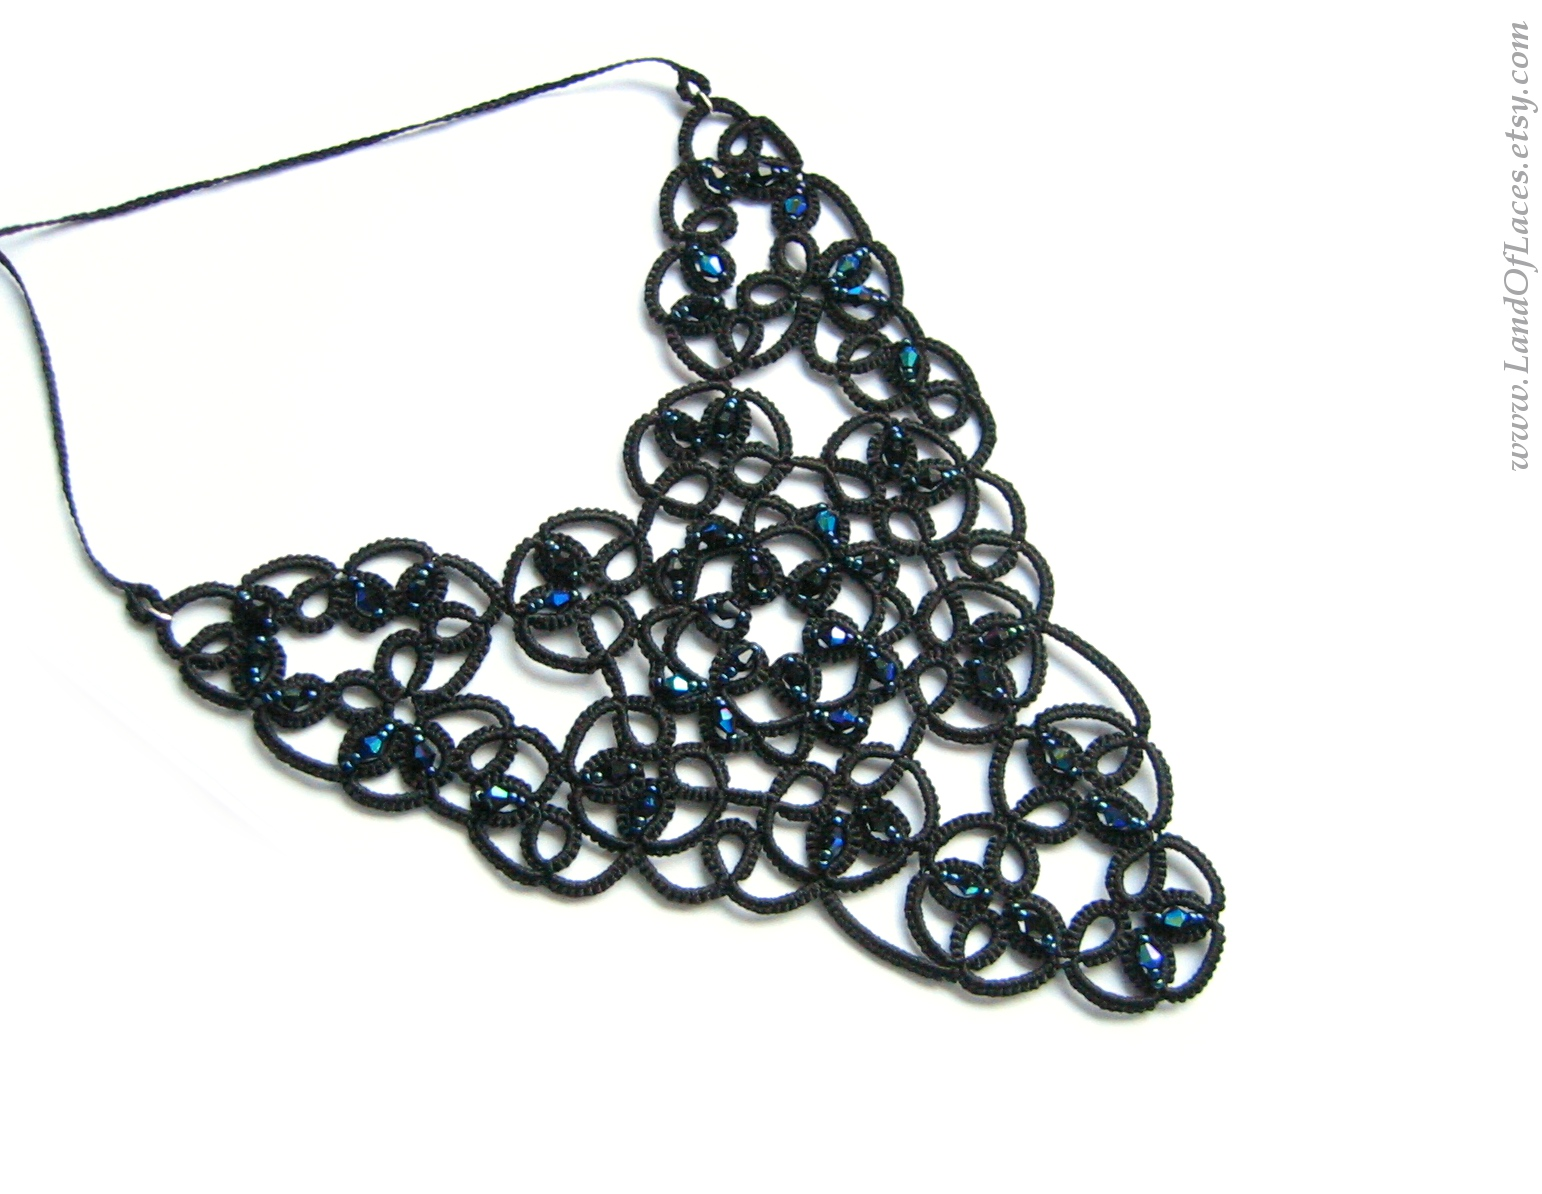 https://www.etsy.com/listing/212914363/big-black-statement-necklace-gothic-lace?ref=shop_home_active_1